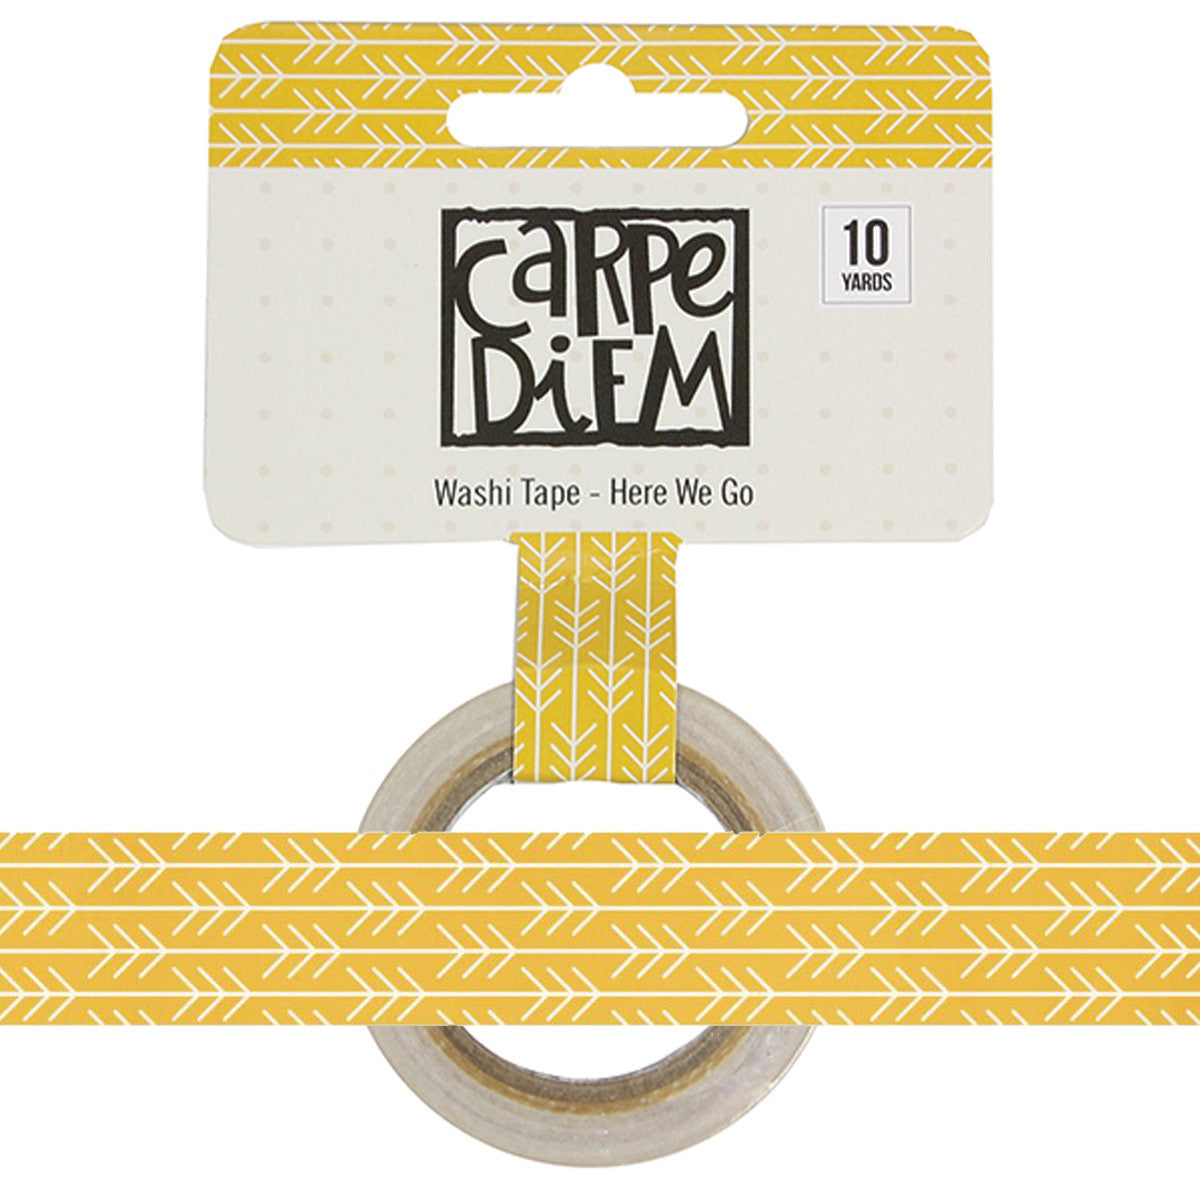 Say Cheese HERE WE GO Yellow Arrow Carpe Diem Washi, 15mm x 10 yards